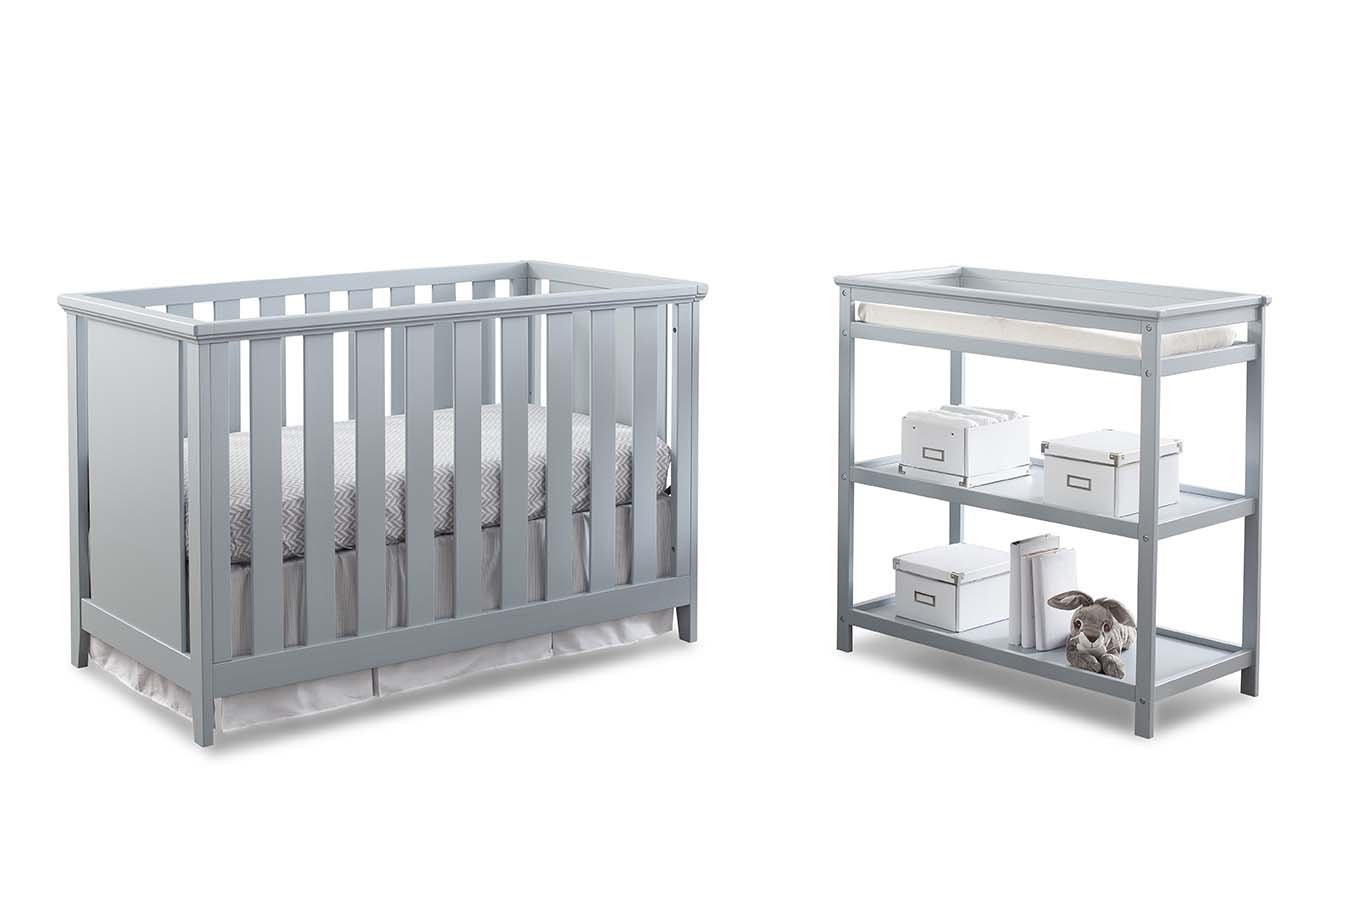 Imagio Baby Casey 3-in-1 Cottage Crib and Changer Set, Grey